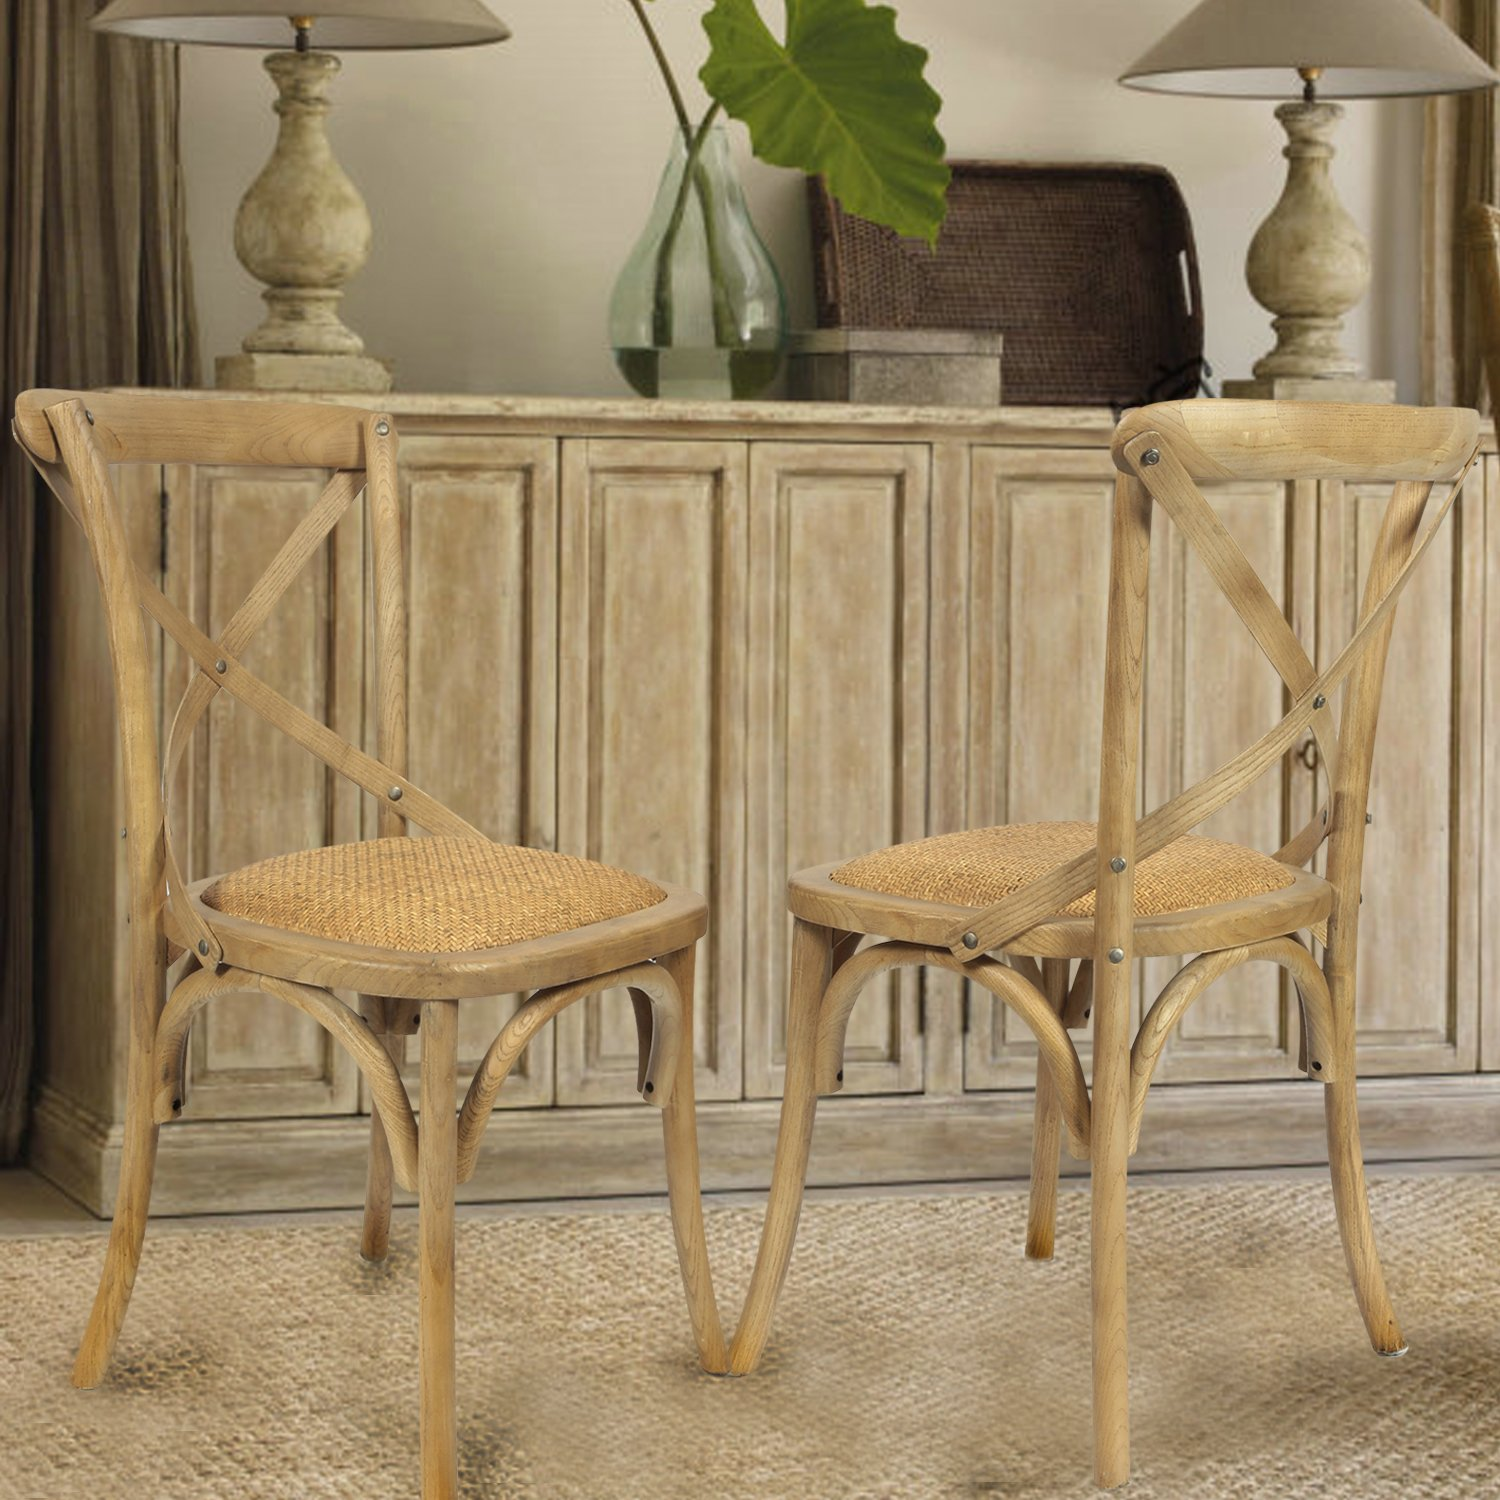 Adeco Elm Wood Rattan Antique Dining Chairs Set Of Two